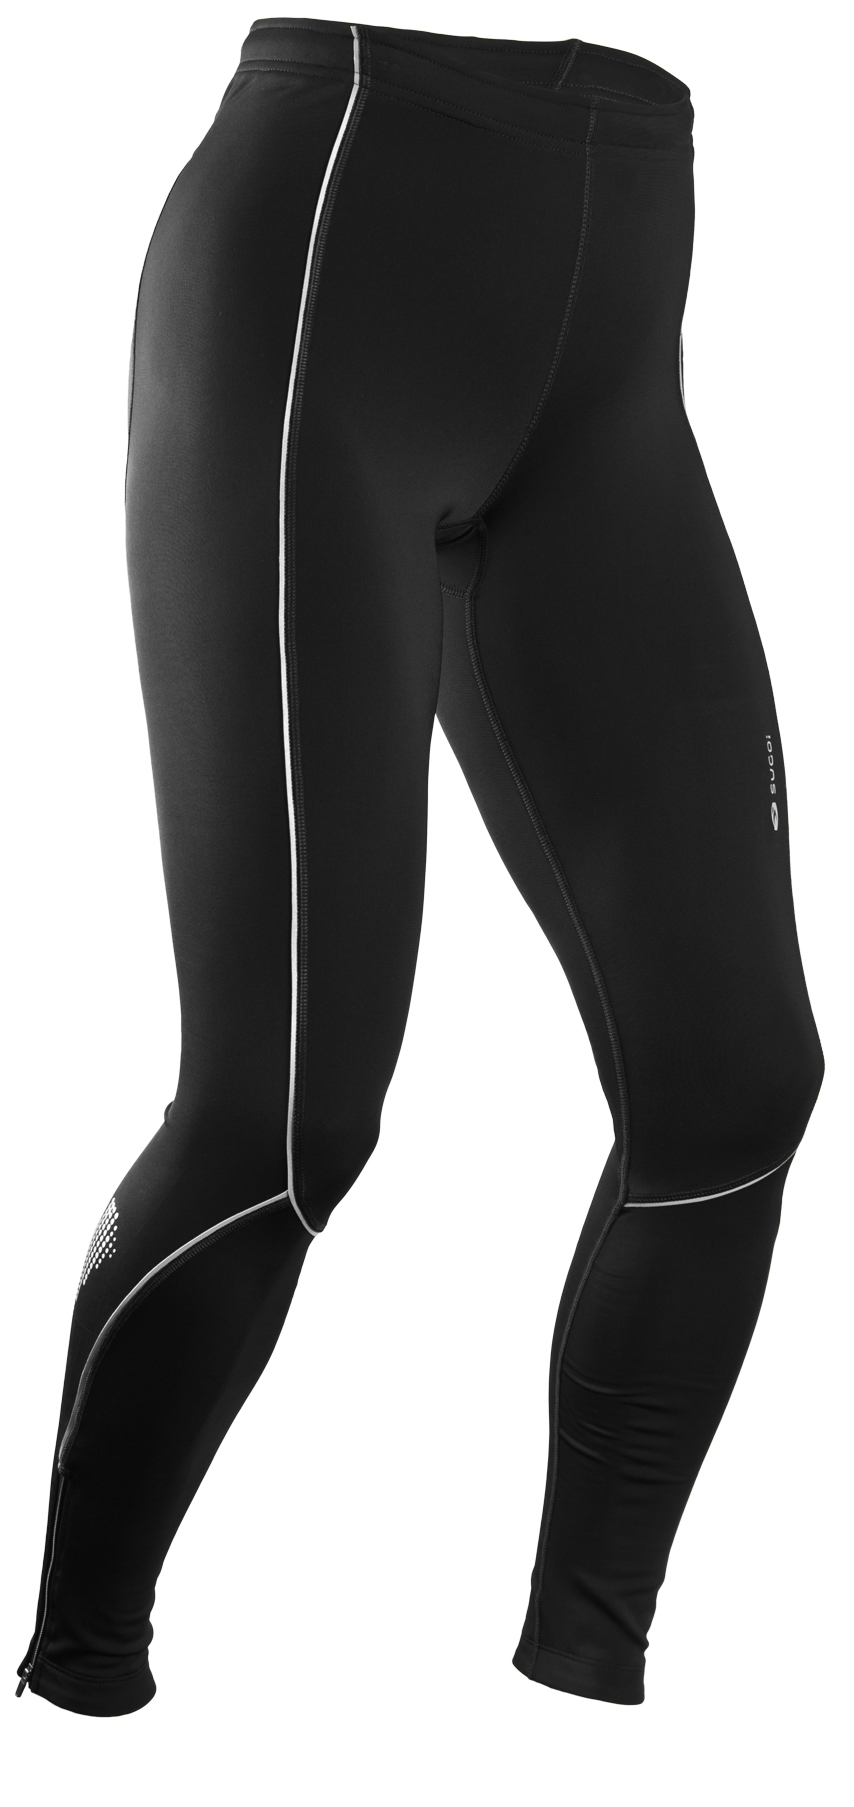 Рейтузы Sugoi MidZERO Zap TIGHT, женские, black (черные), XS фото